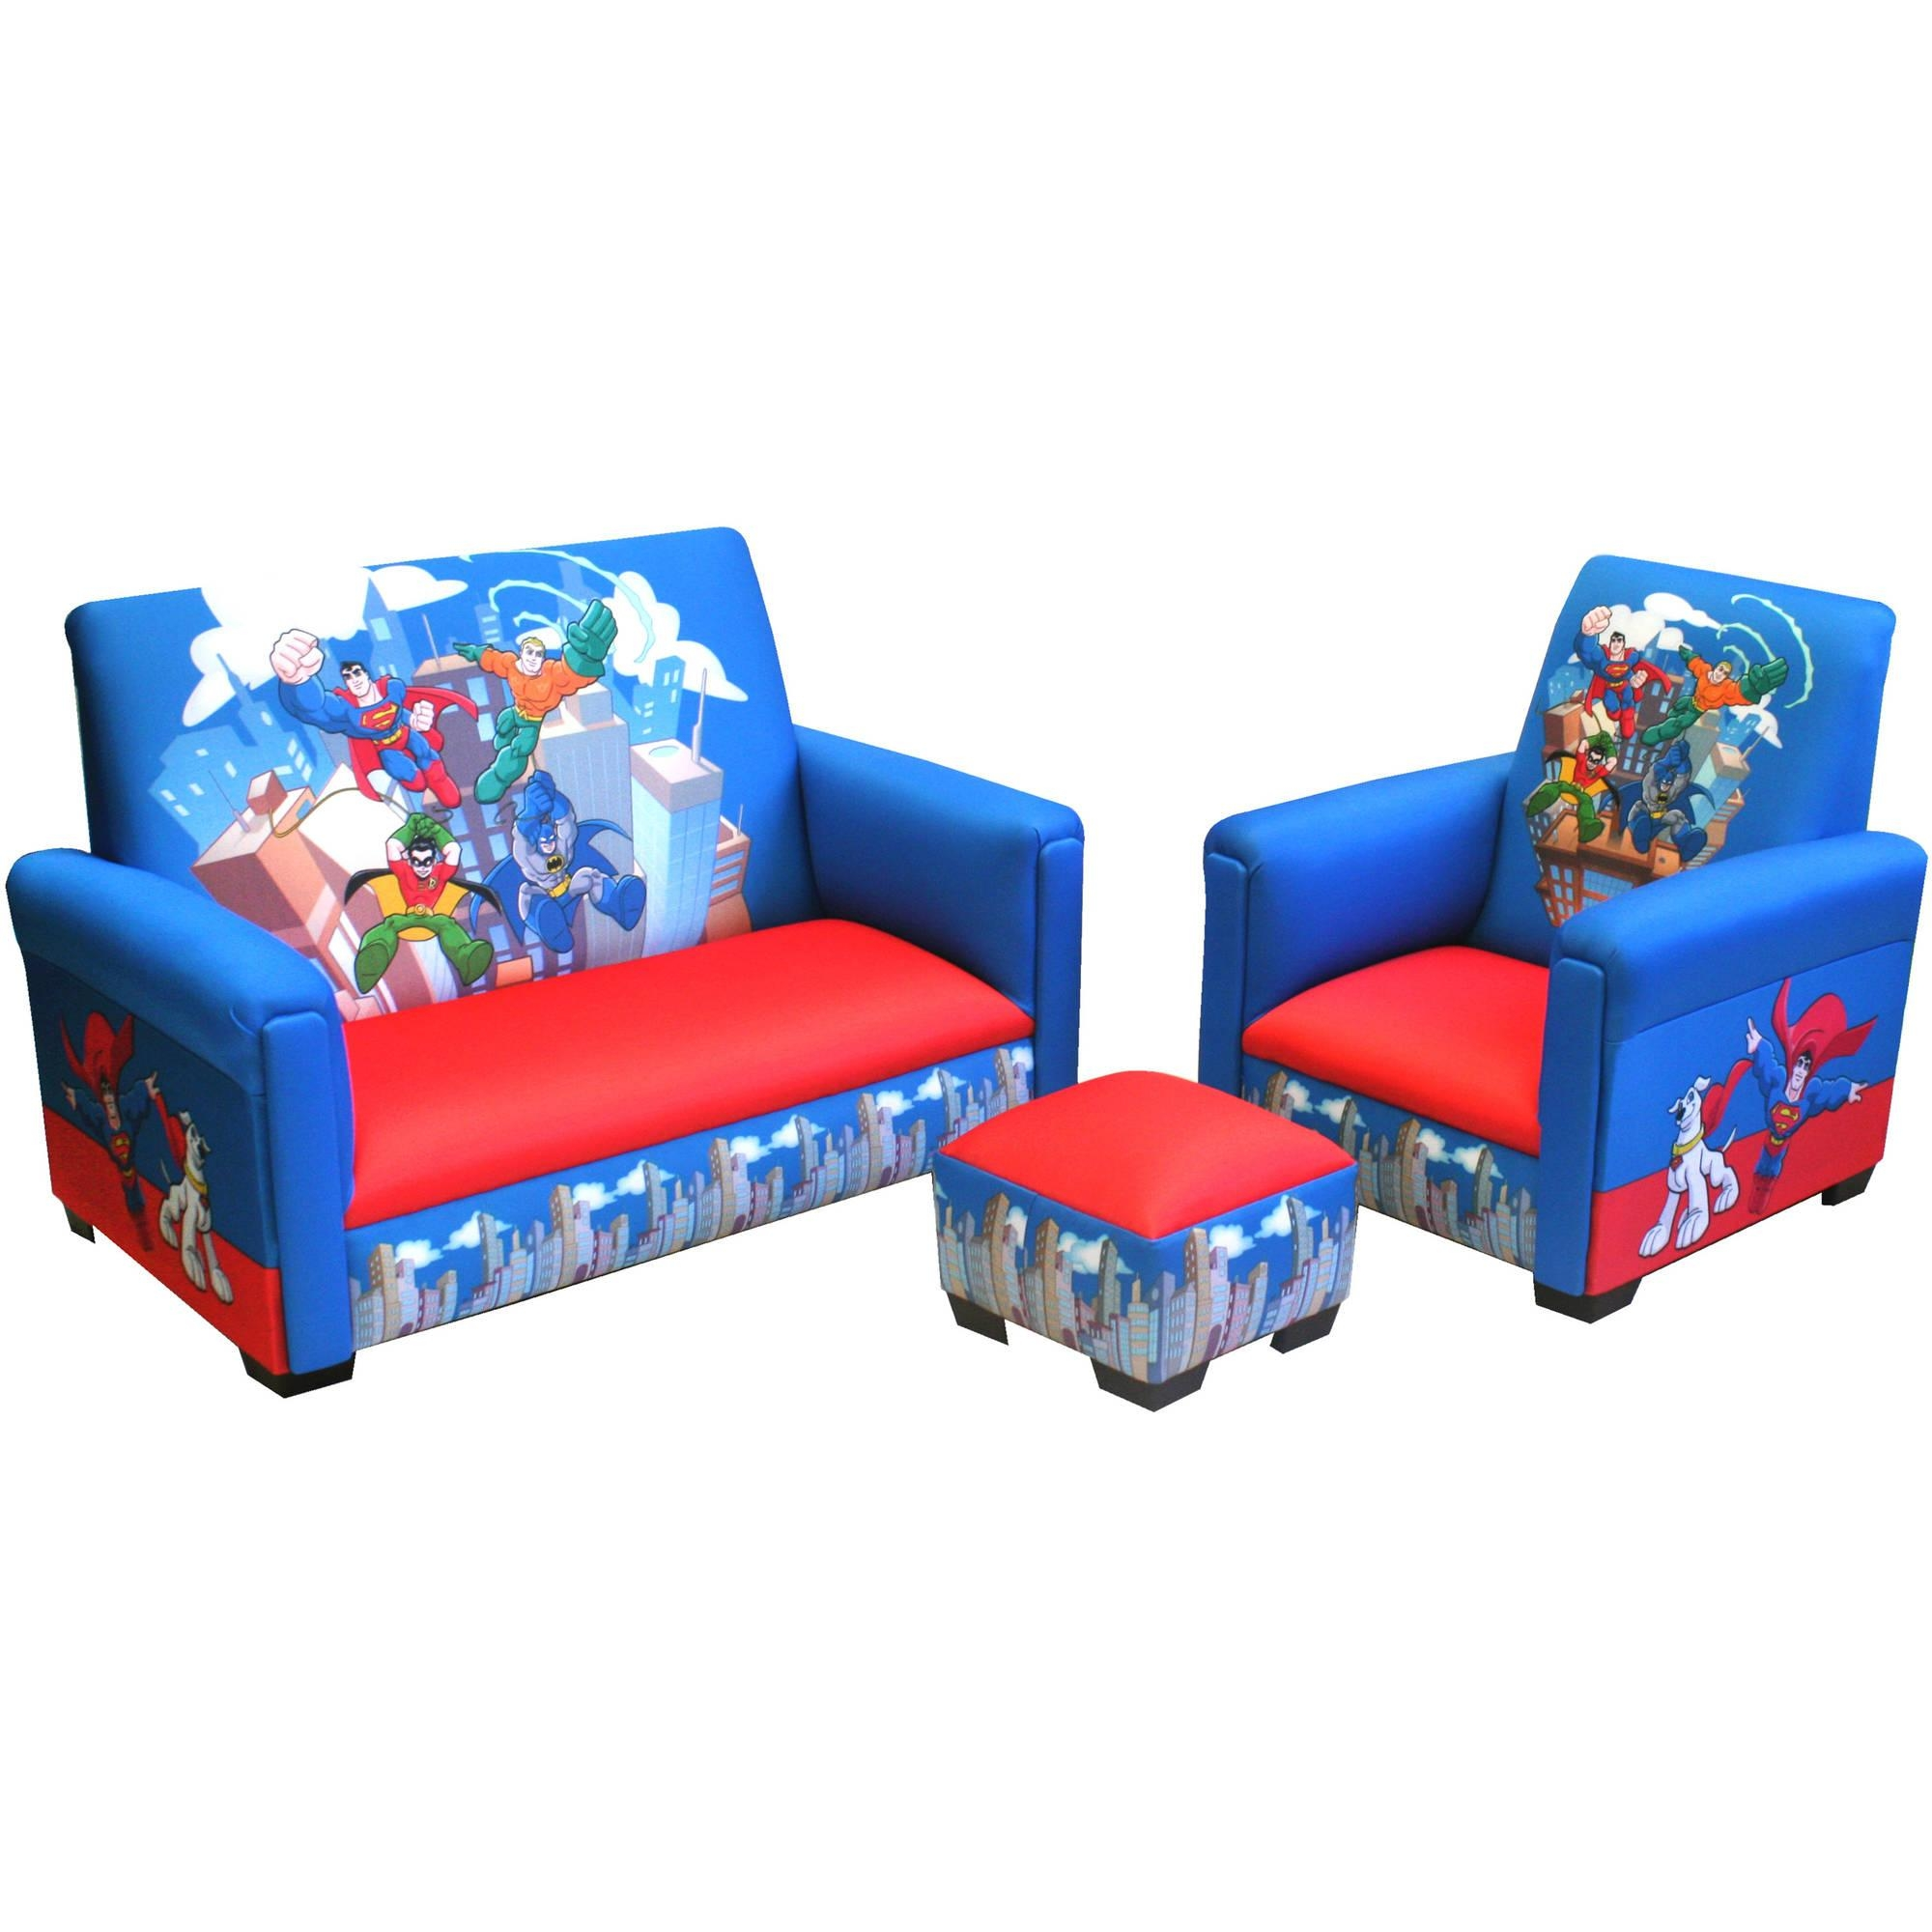 Sofas Center : Kids Sofa Set Popular Buy Cheap Lots From China Hot Throughout Cheap Kids Sofas (Image 10 of 20)